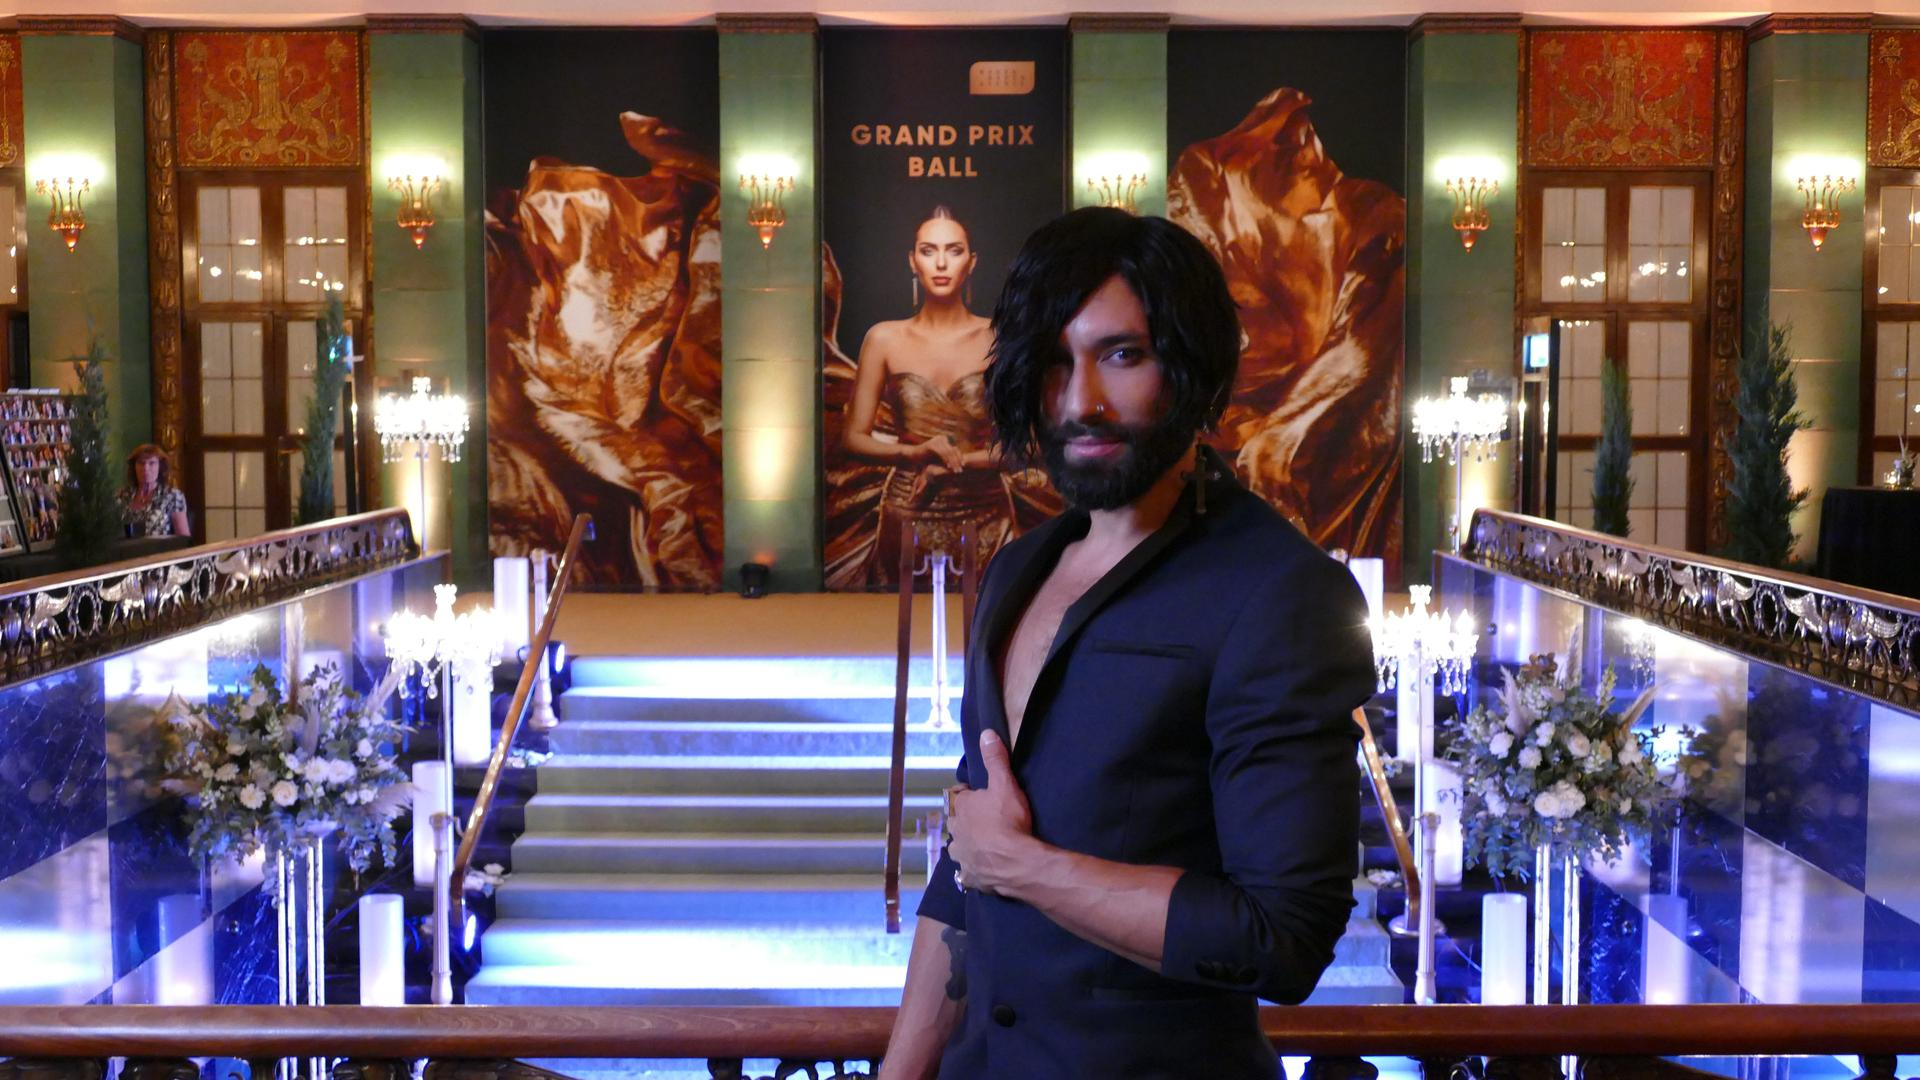 Grand PRix Ball Conchita Tom Wurst beo (2)